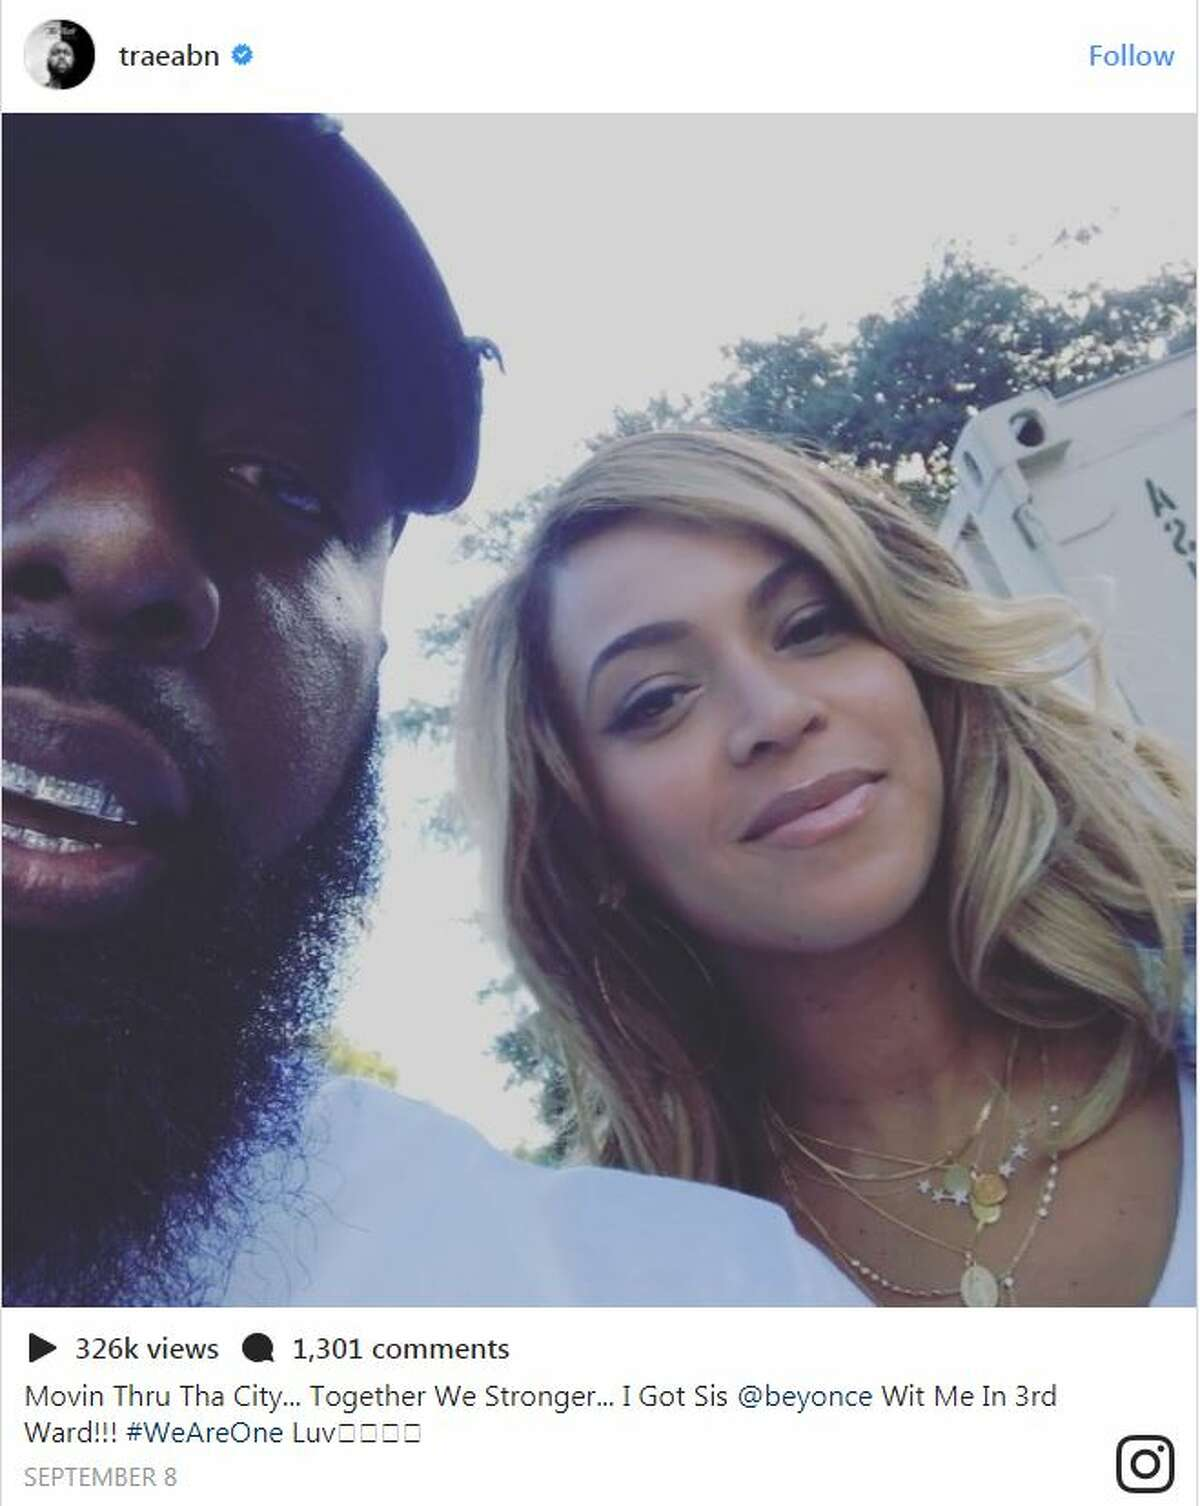 TraeThaTruth and Beyonce helped out in the Third Ward.